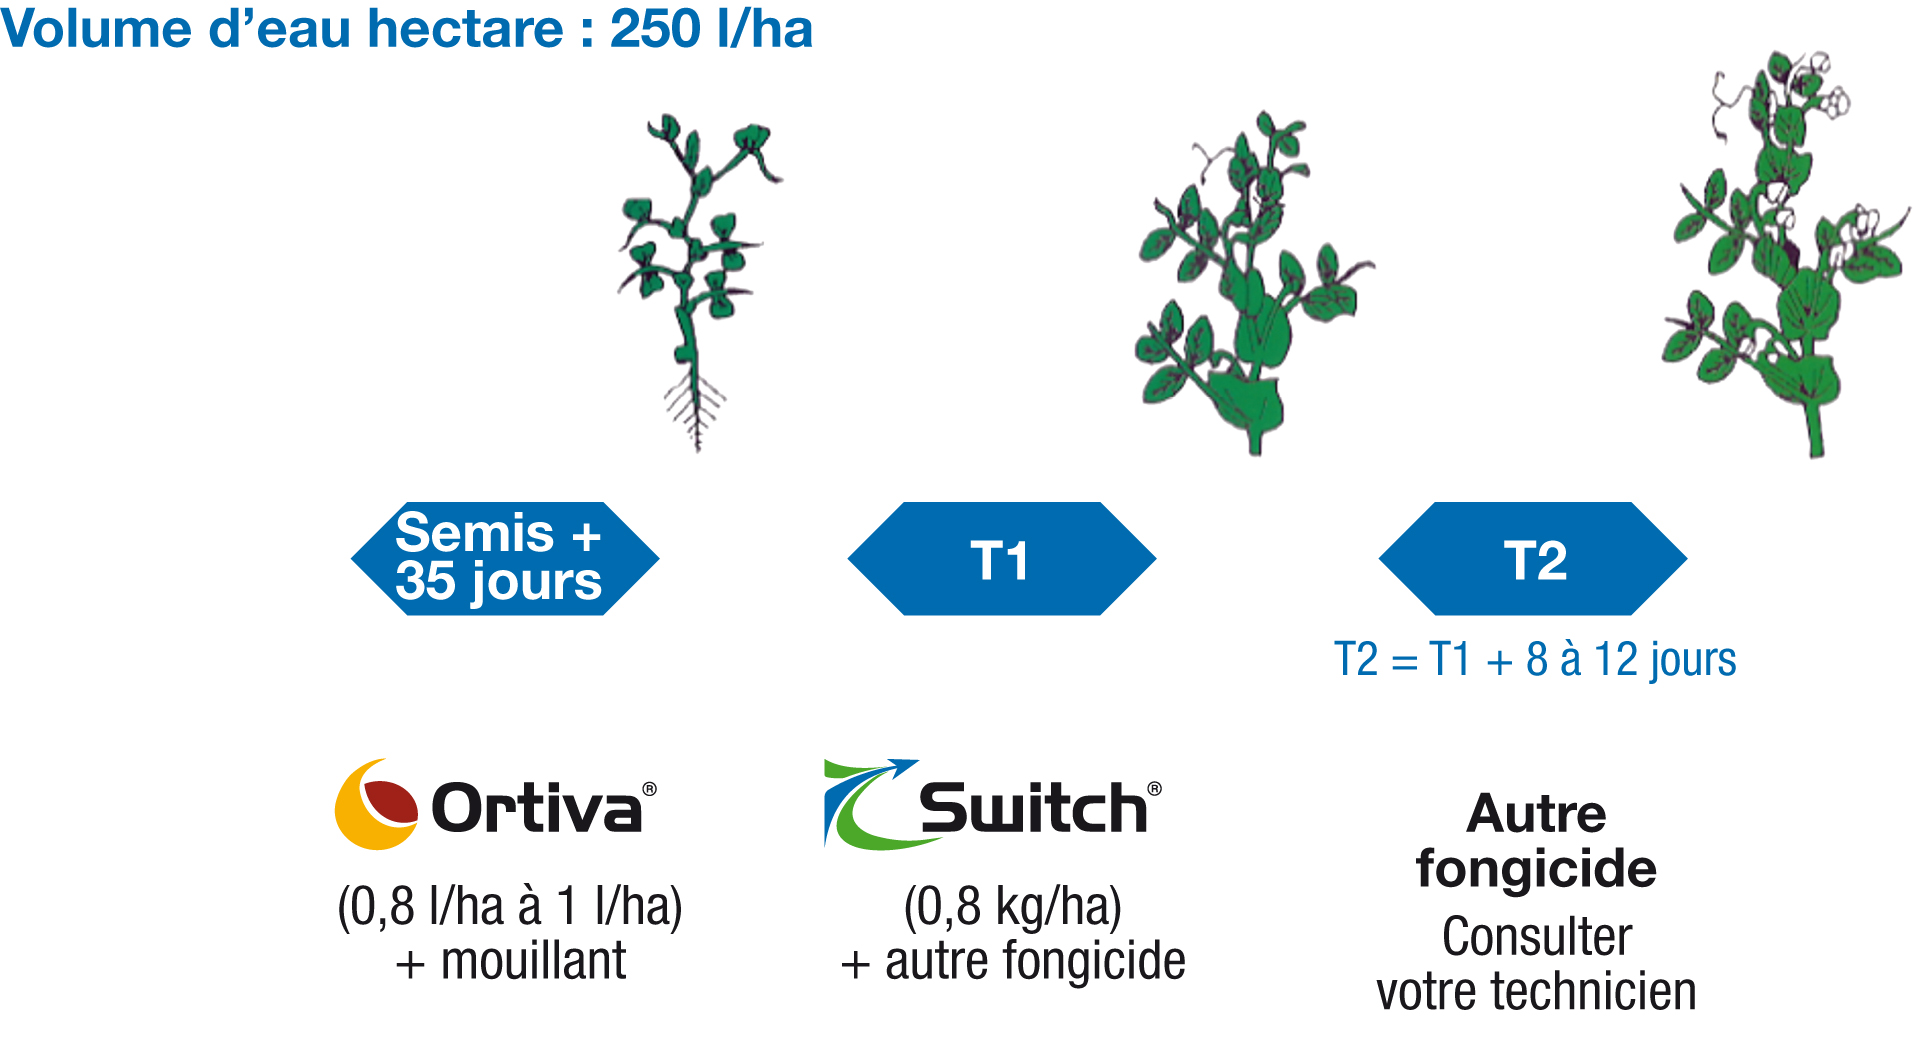 Positionnement de Switch sur pois de conserve